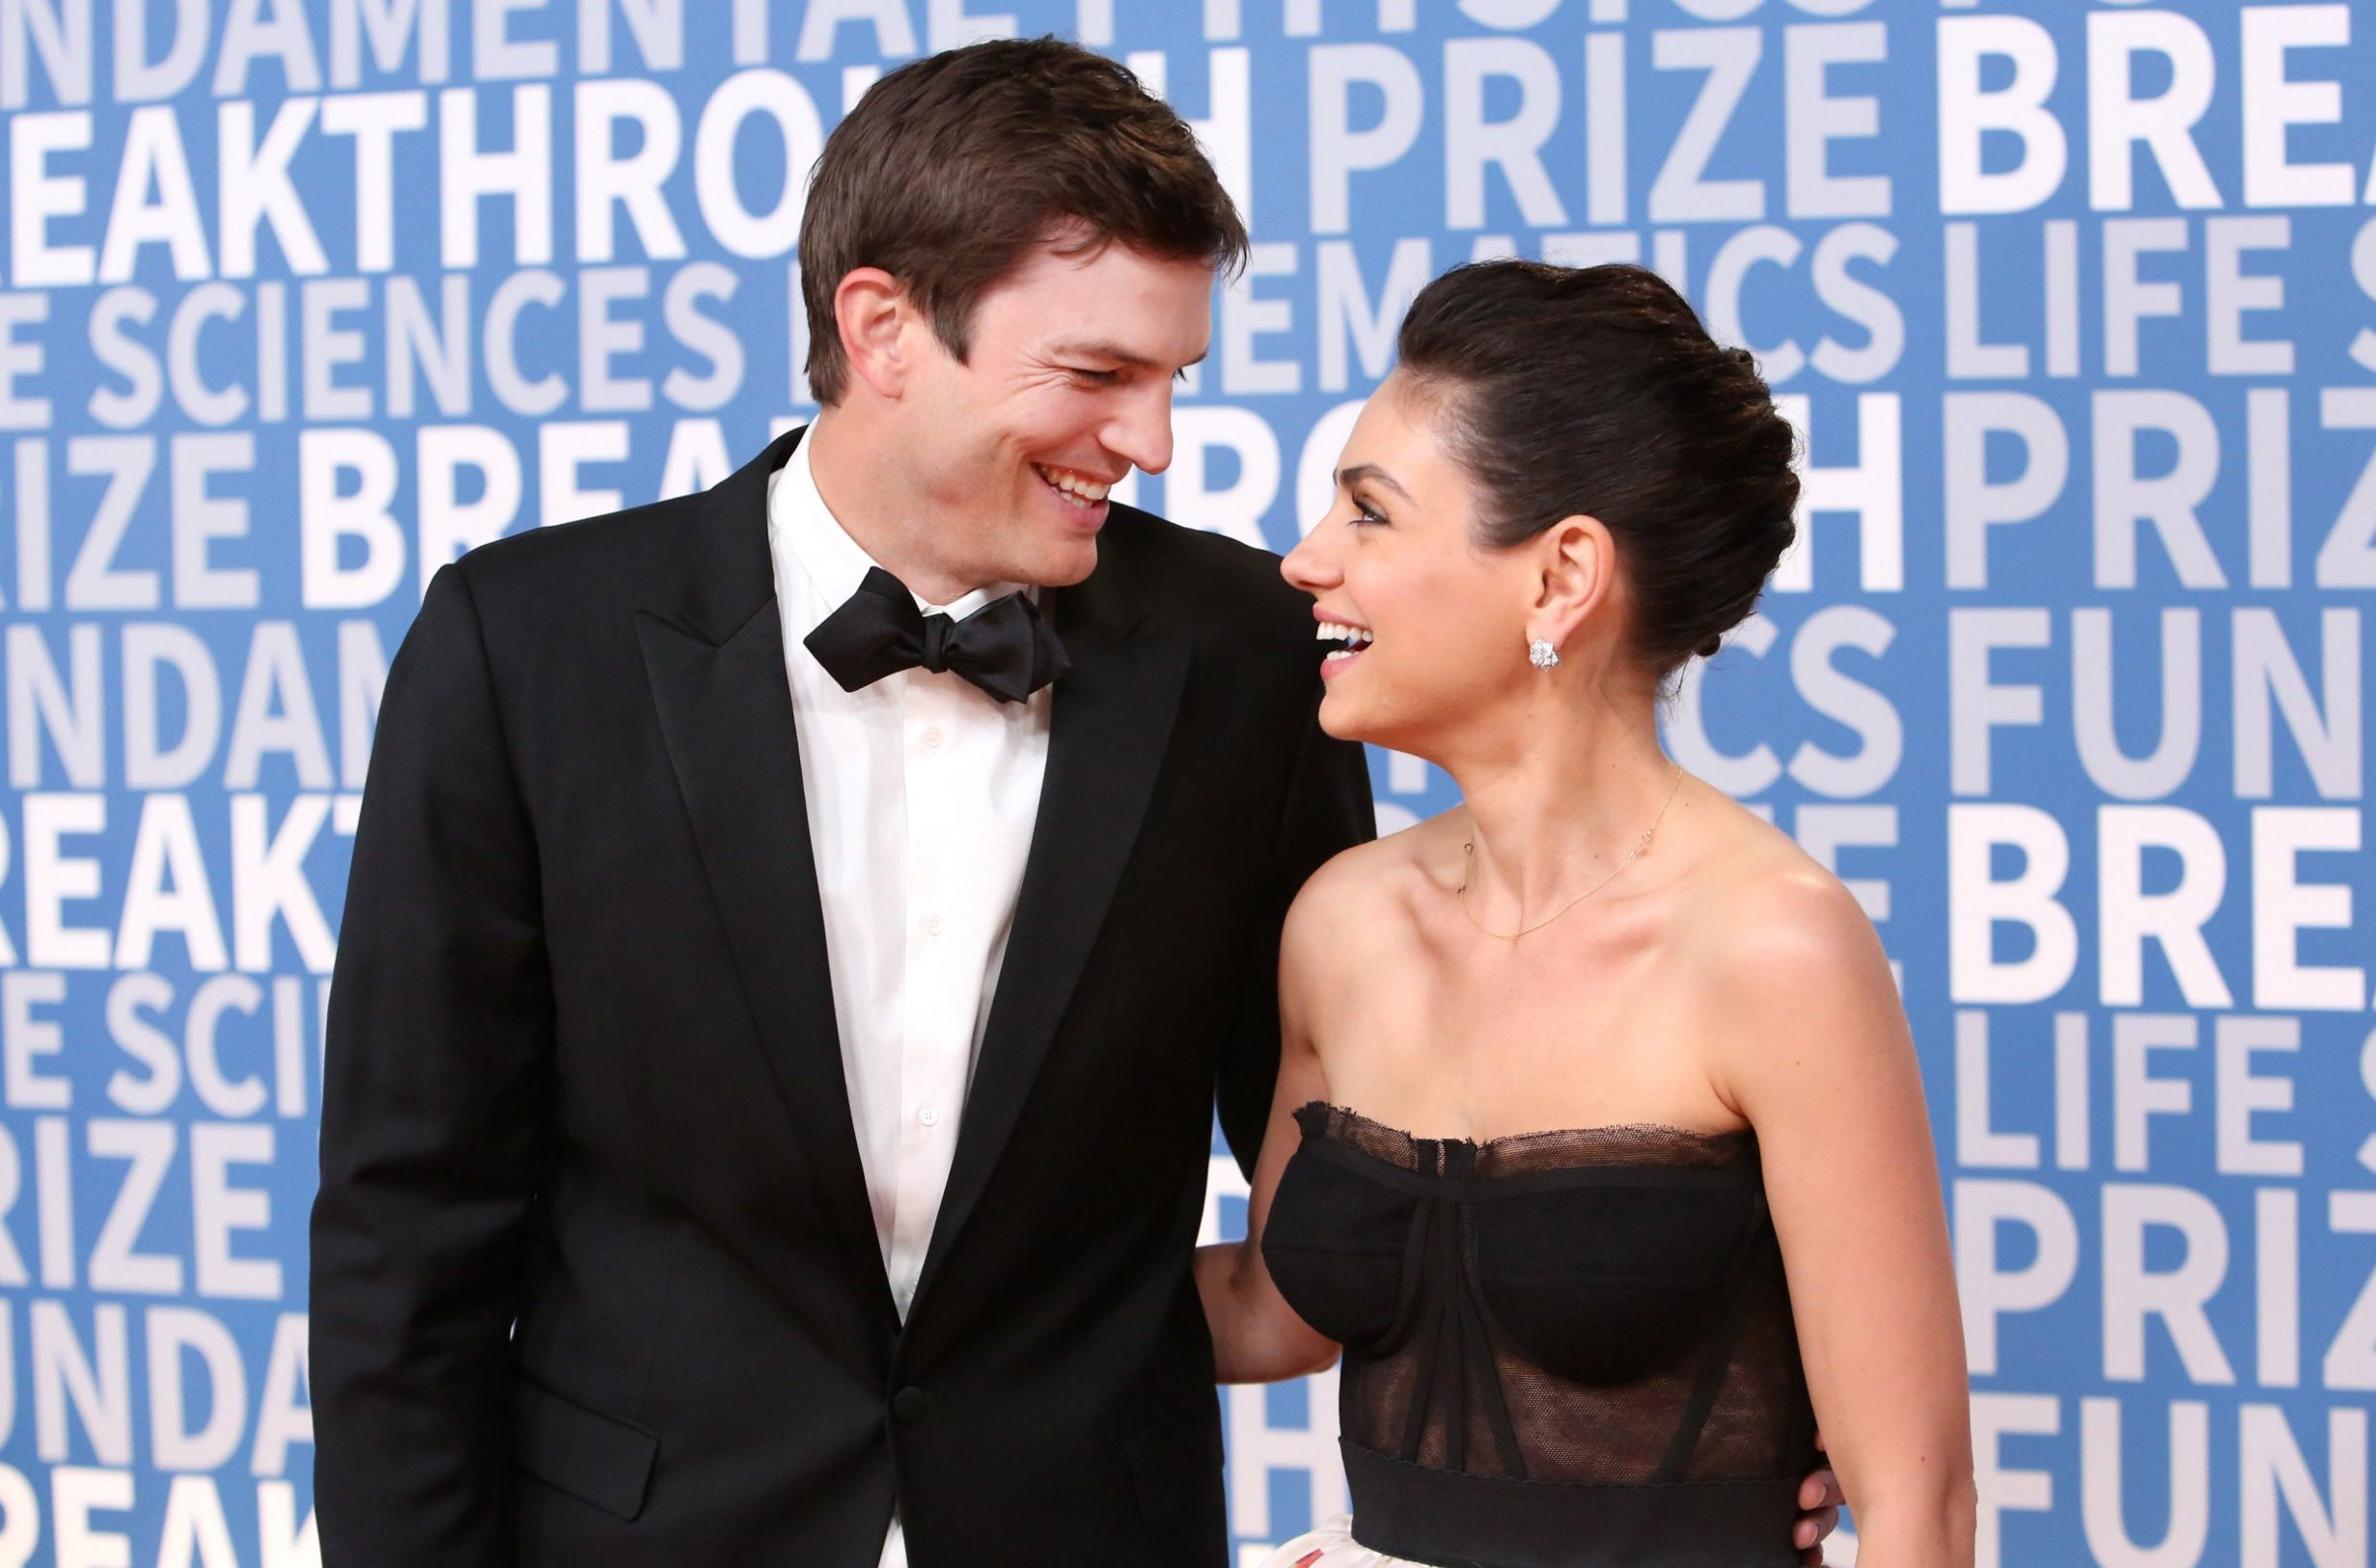 Mila Kunis and Ashton Kutcher make their first red carpet appearance together in 17 years